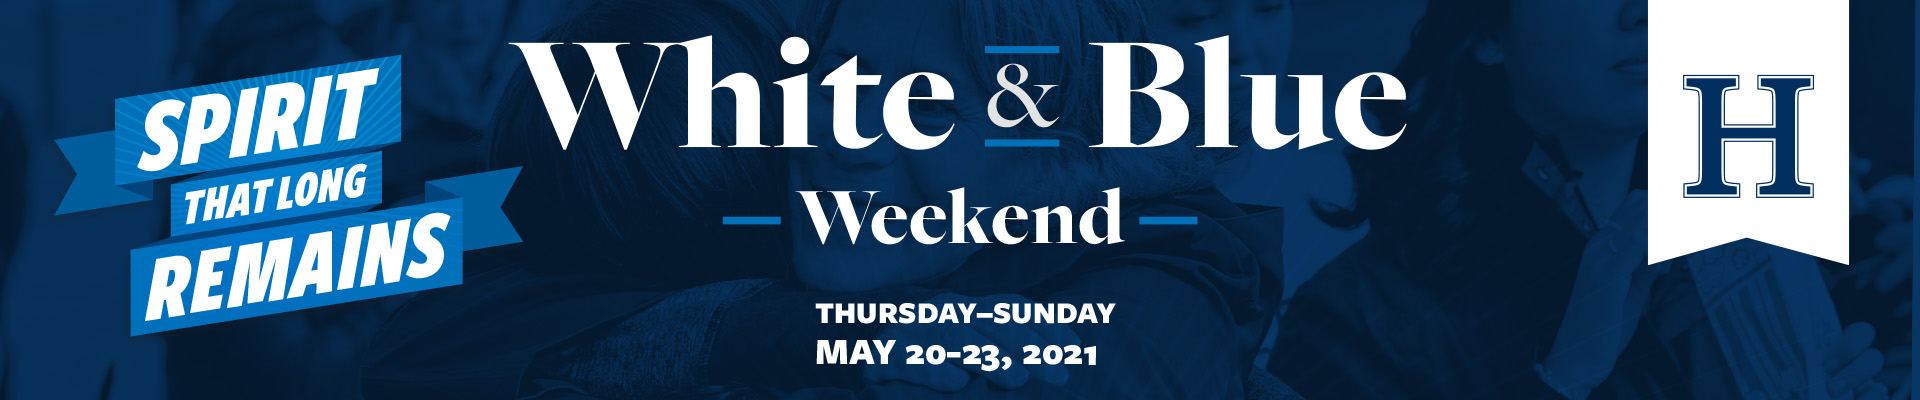 White and Blue Weekend